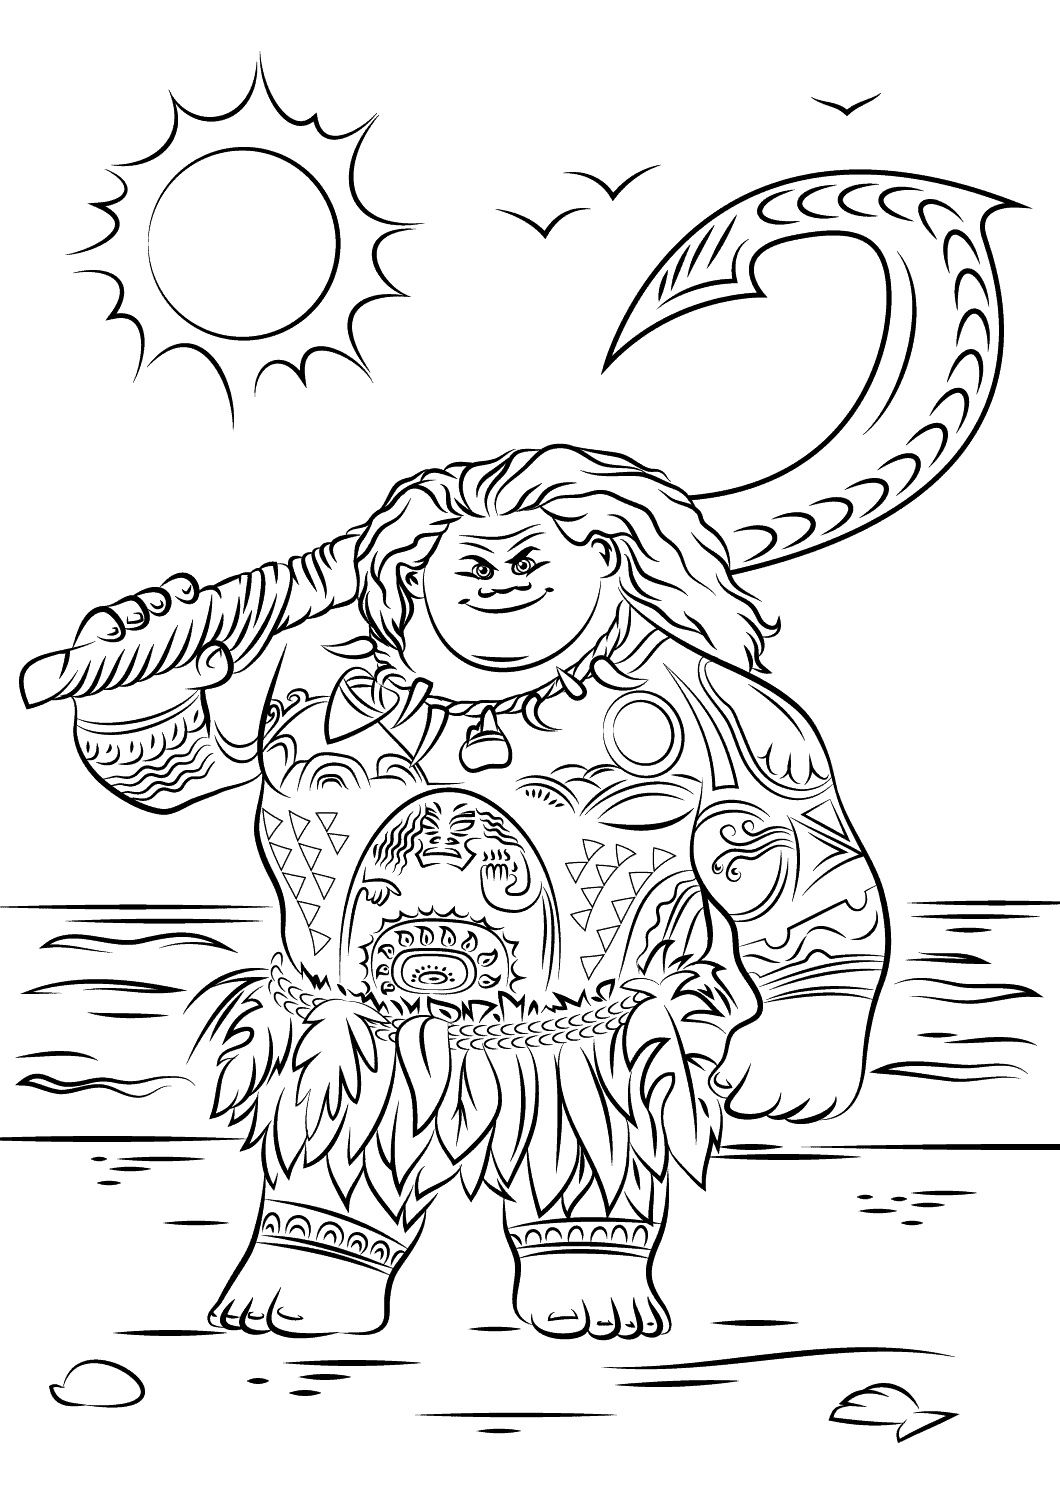 Printable Moana Coloring Pages With Images Moana Coloring